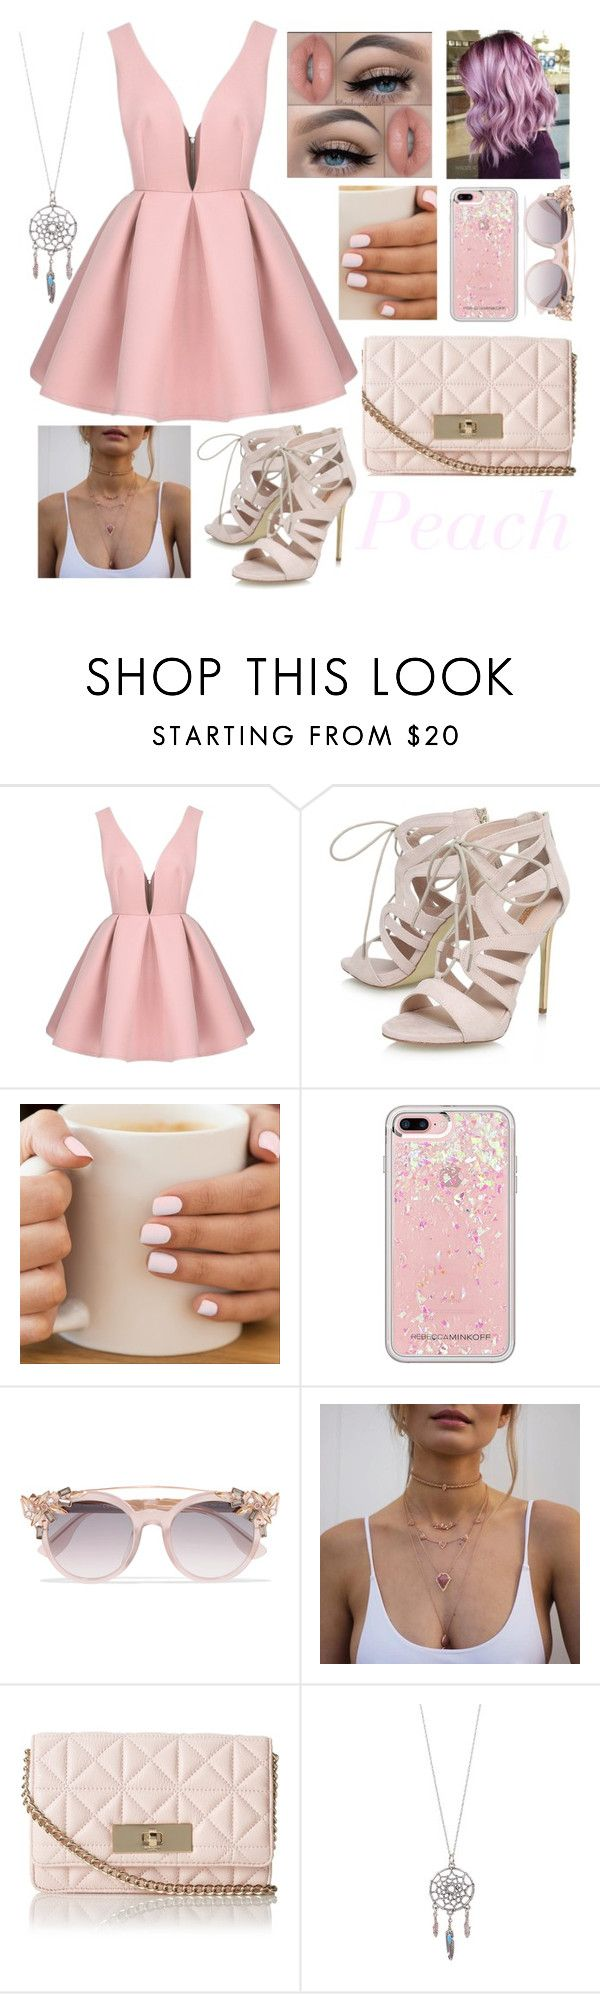 """I'm looking for a way to change my mind, don't walk away"" by happinesspeaceandlove ❤ liked on Polyvore featuring David's Bridal, Carvela, Rebecca Minkoff, Jimmy Choo and Kate Spade"